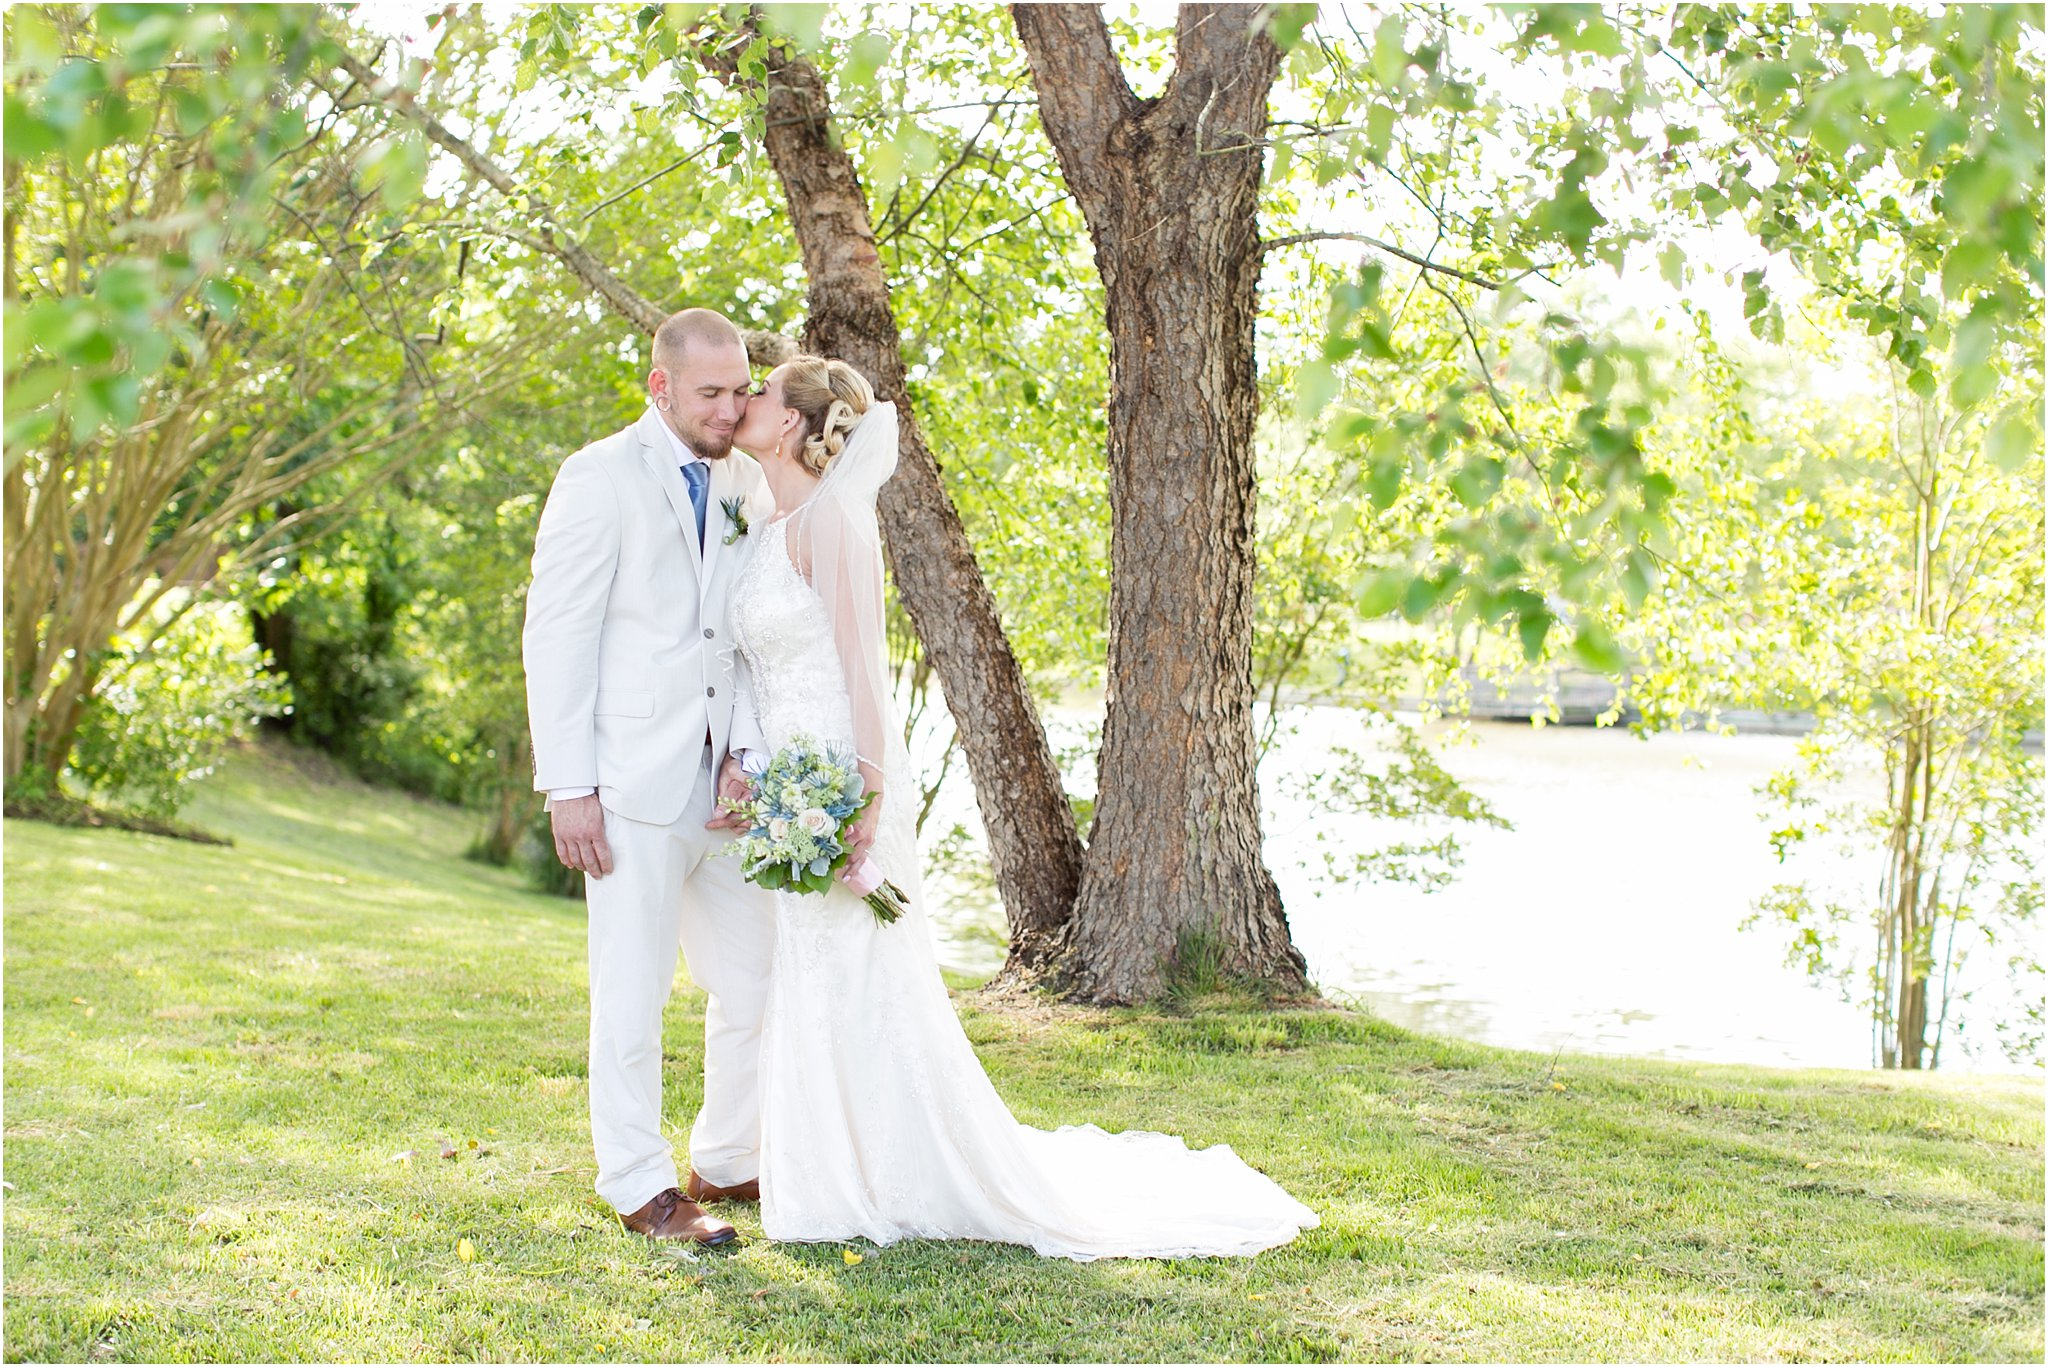 jessica_ryan_photography_virginia_virginiabeachweddingphotographer_studioIdo_backyardwedding_waterfrontwedding_1672